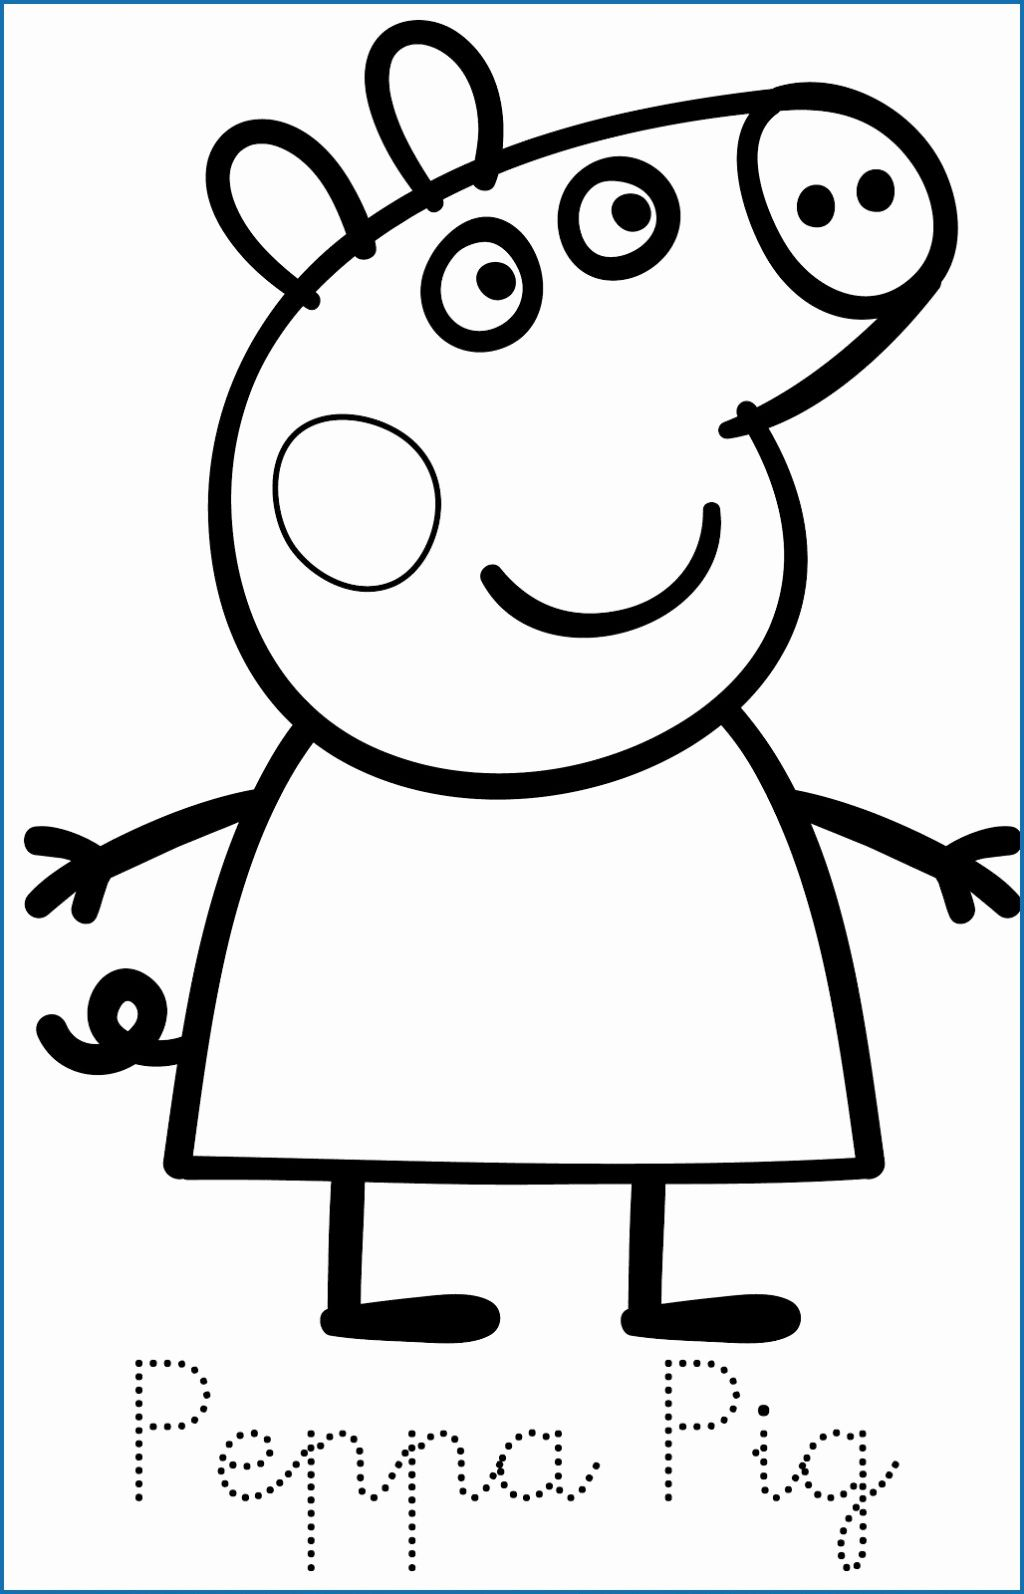 Coloring Cartoons Peppa Pig Luxury Peppa Pig Coloring Pages